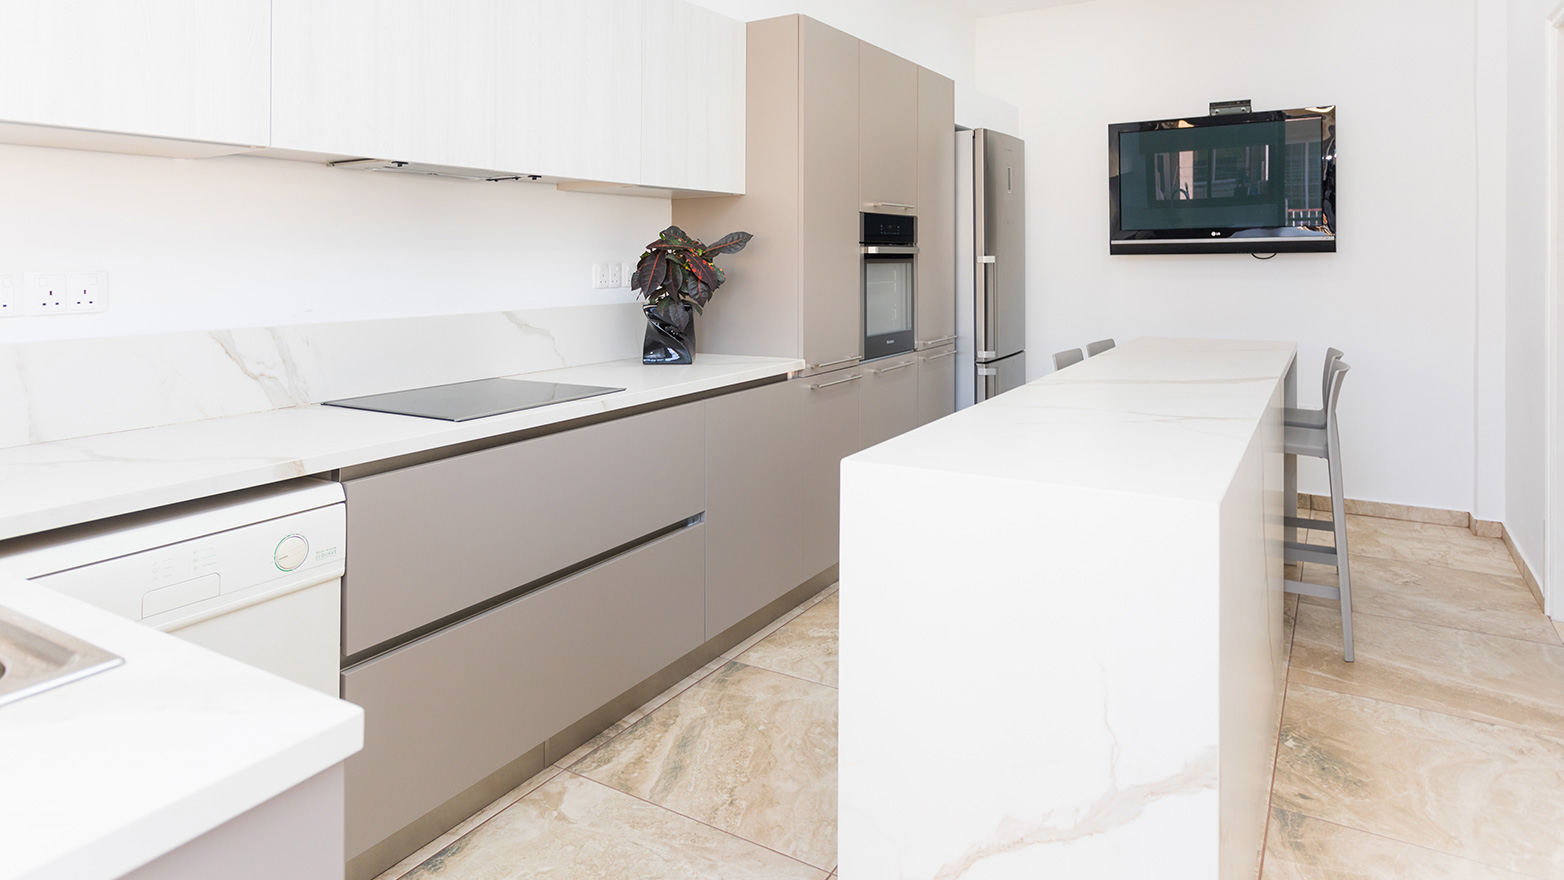 Zecchinon Cucine Multisystem & System Kappa Larnaca Kitchen Renovation Cyprus Kitchen Studio Living & More Bedroom Solutions Wardrobes Zalf Euromobil